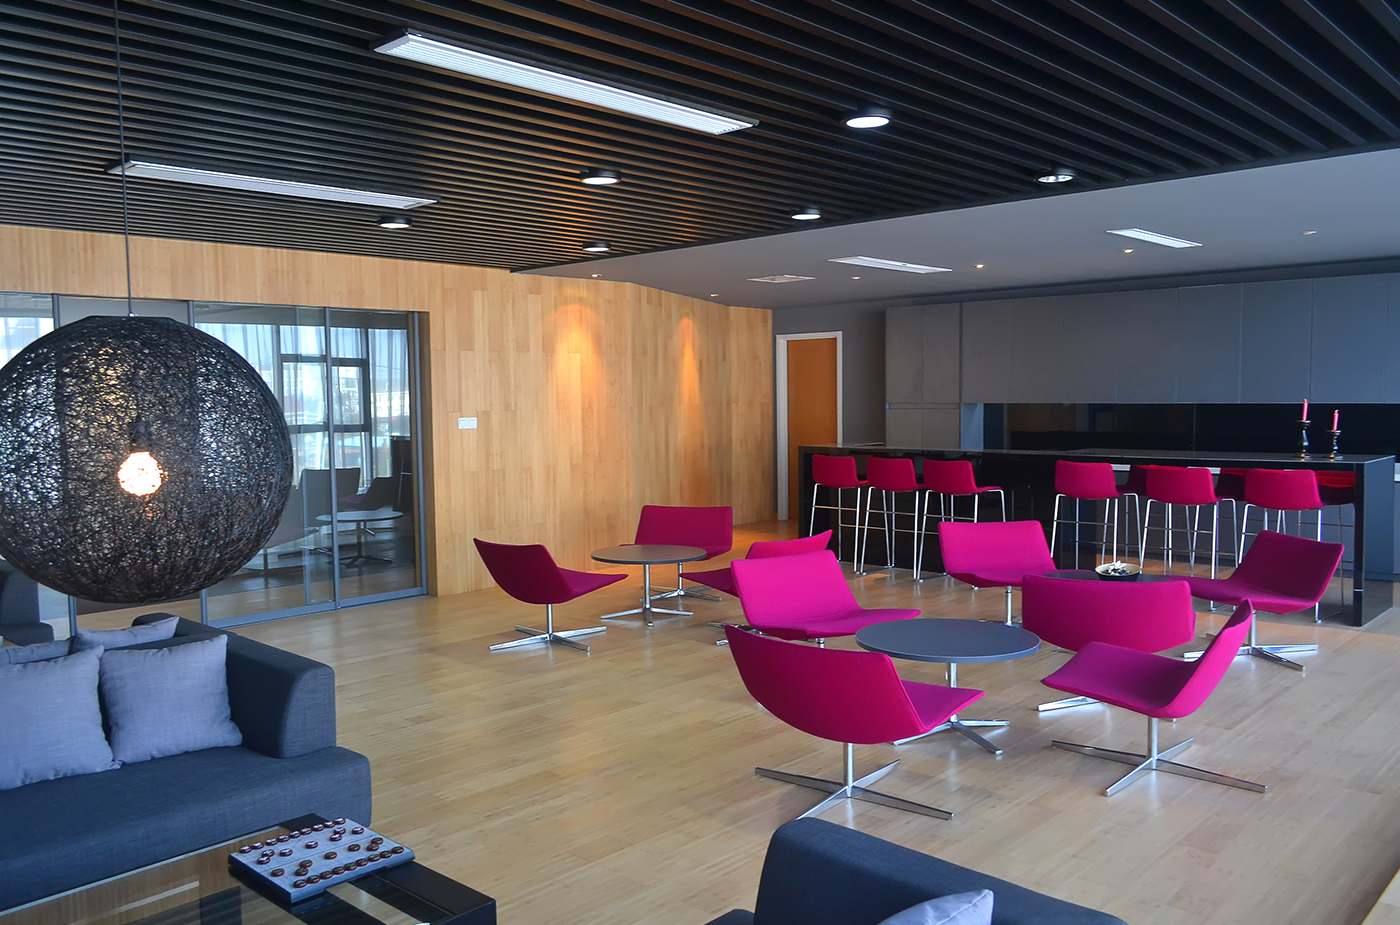 office-lounge-pink-seats1400x925.png